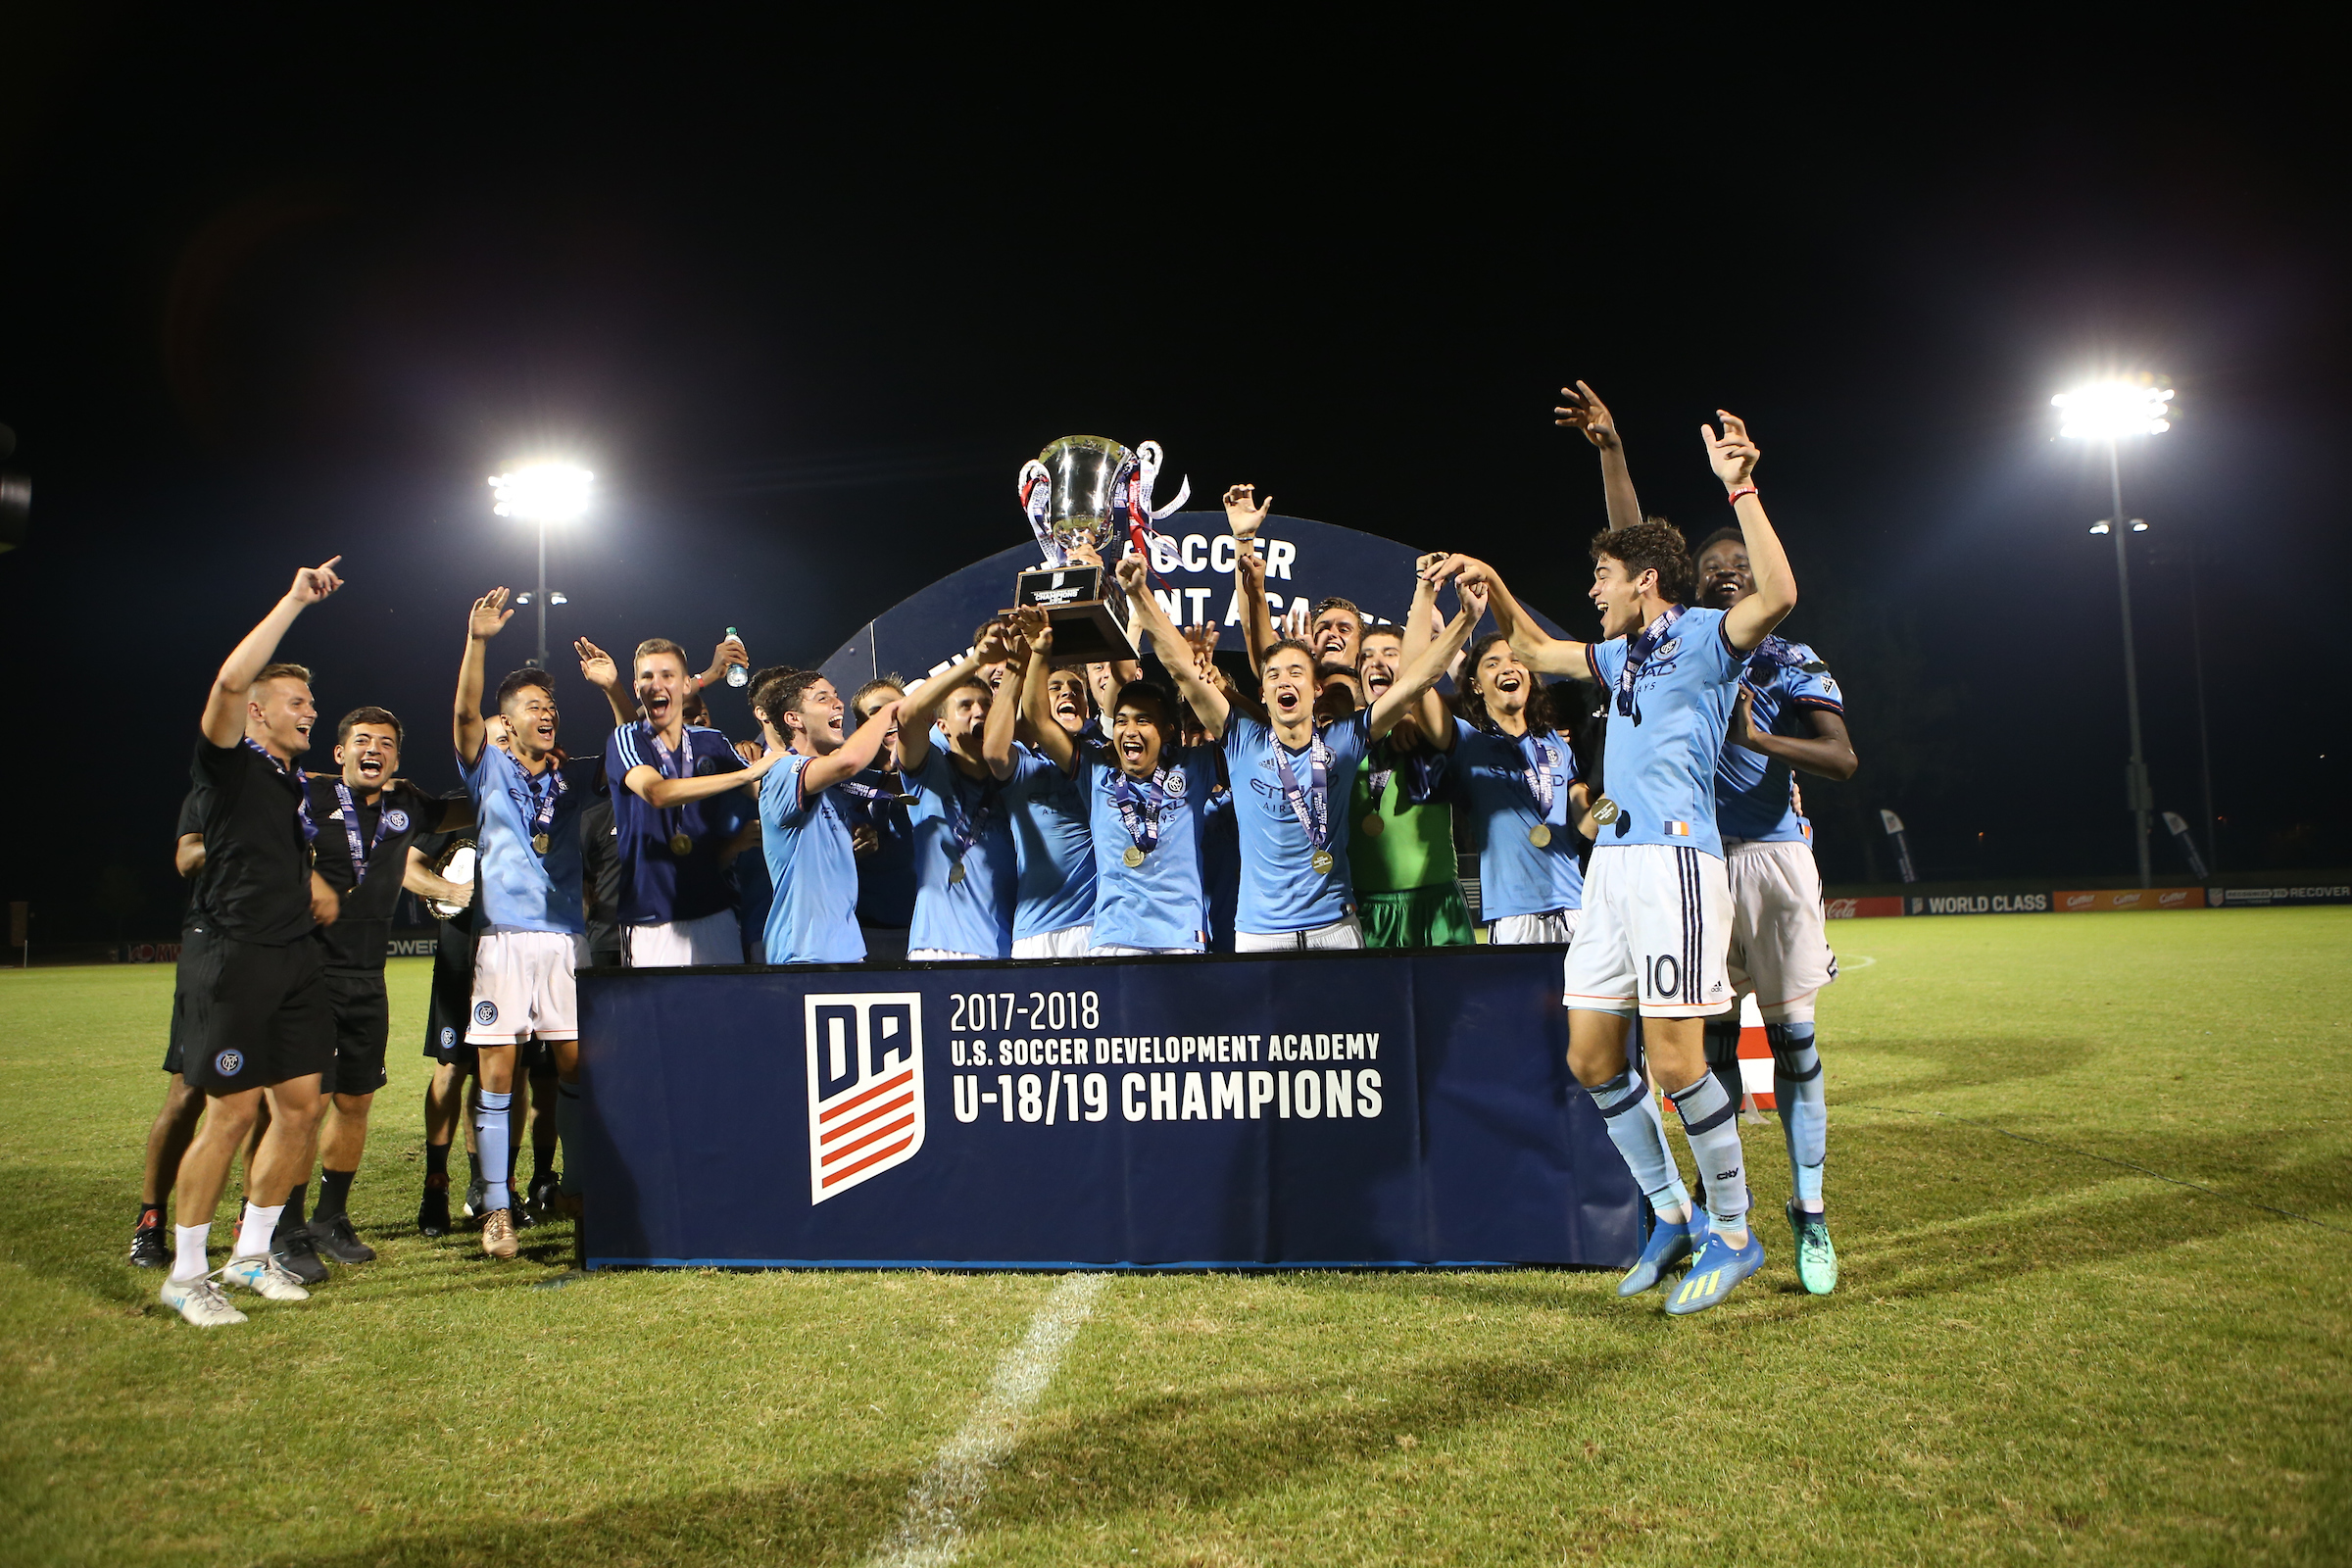 d3c875334 NEW YORK CITY FC TAKES HOME DEVELOPMENT ACADEMY U-18 19 TITLE IN DRAMATIC  PENALTY KICK SHOOTUT